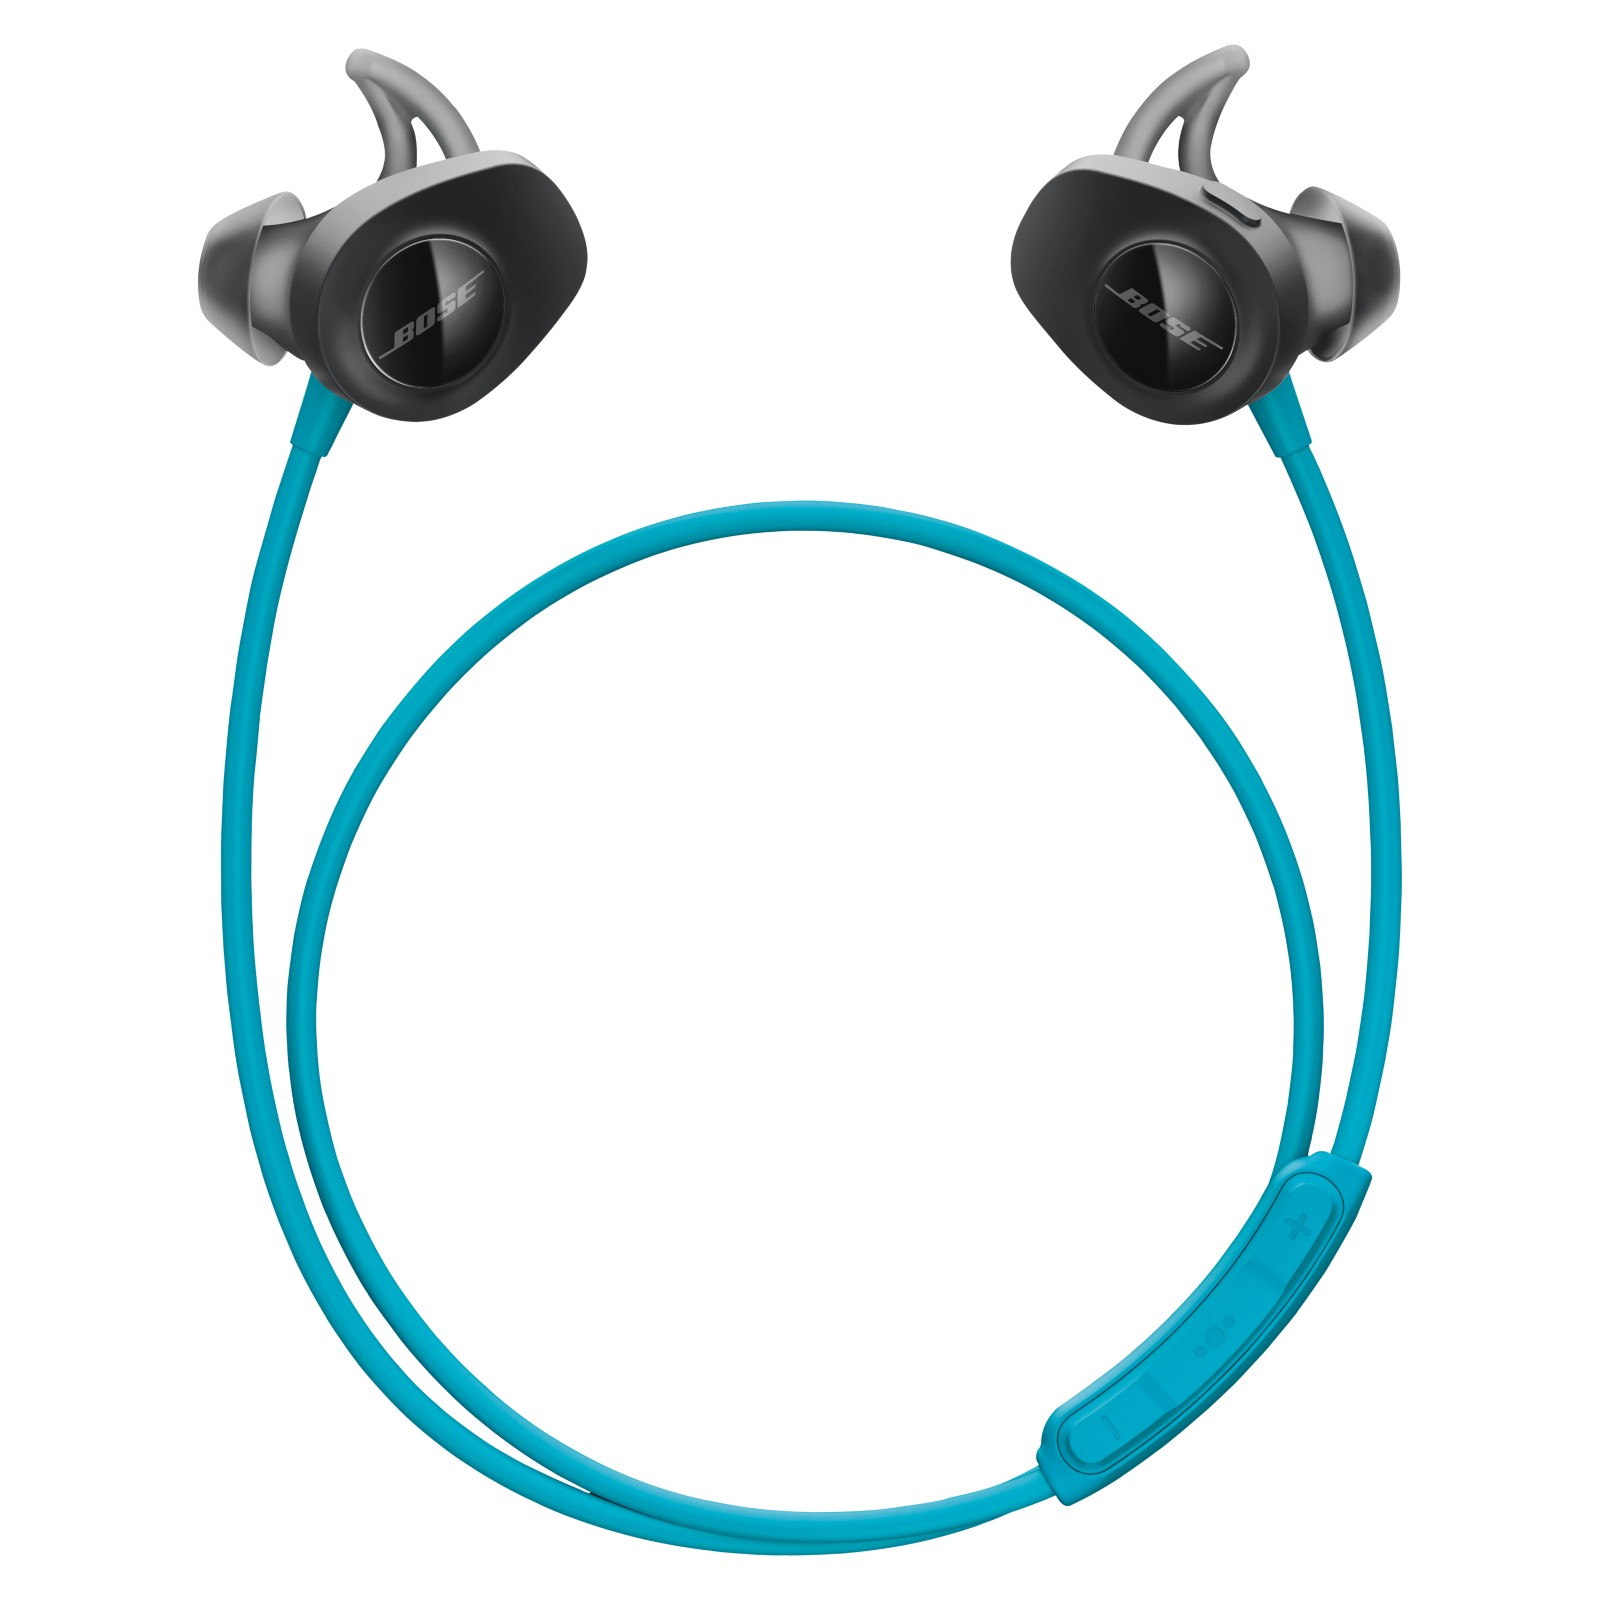 Bose® SoundSport™ Sweat & Weather-Resistant Wireless In-Ear Headphones With Bluetooth/NFC